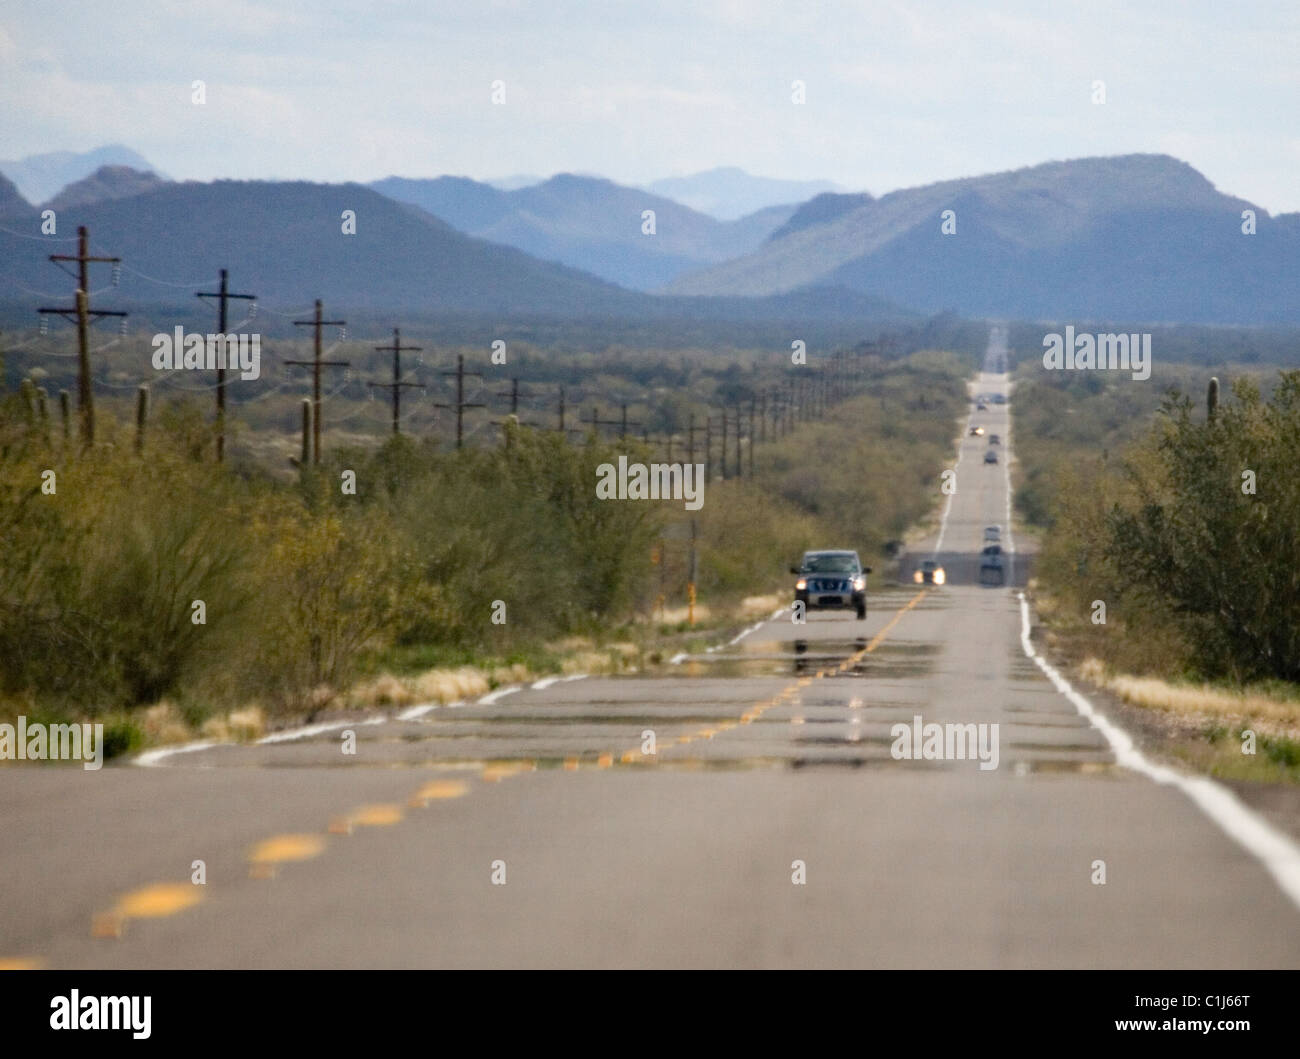 Heat mirage on highway in the Arizona desert - Stock Image